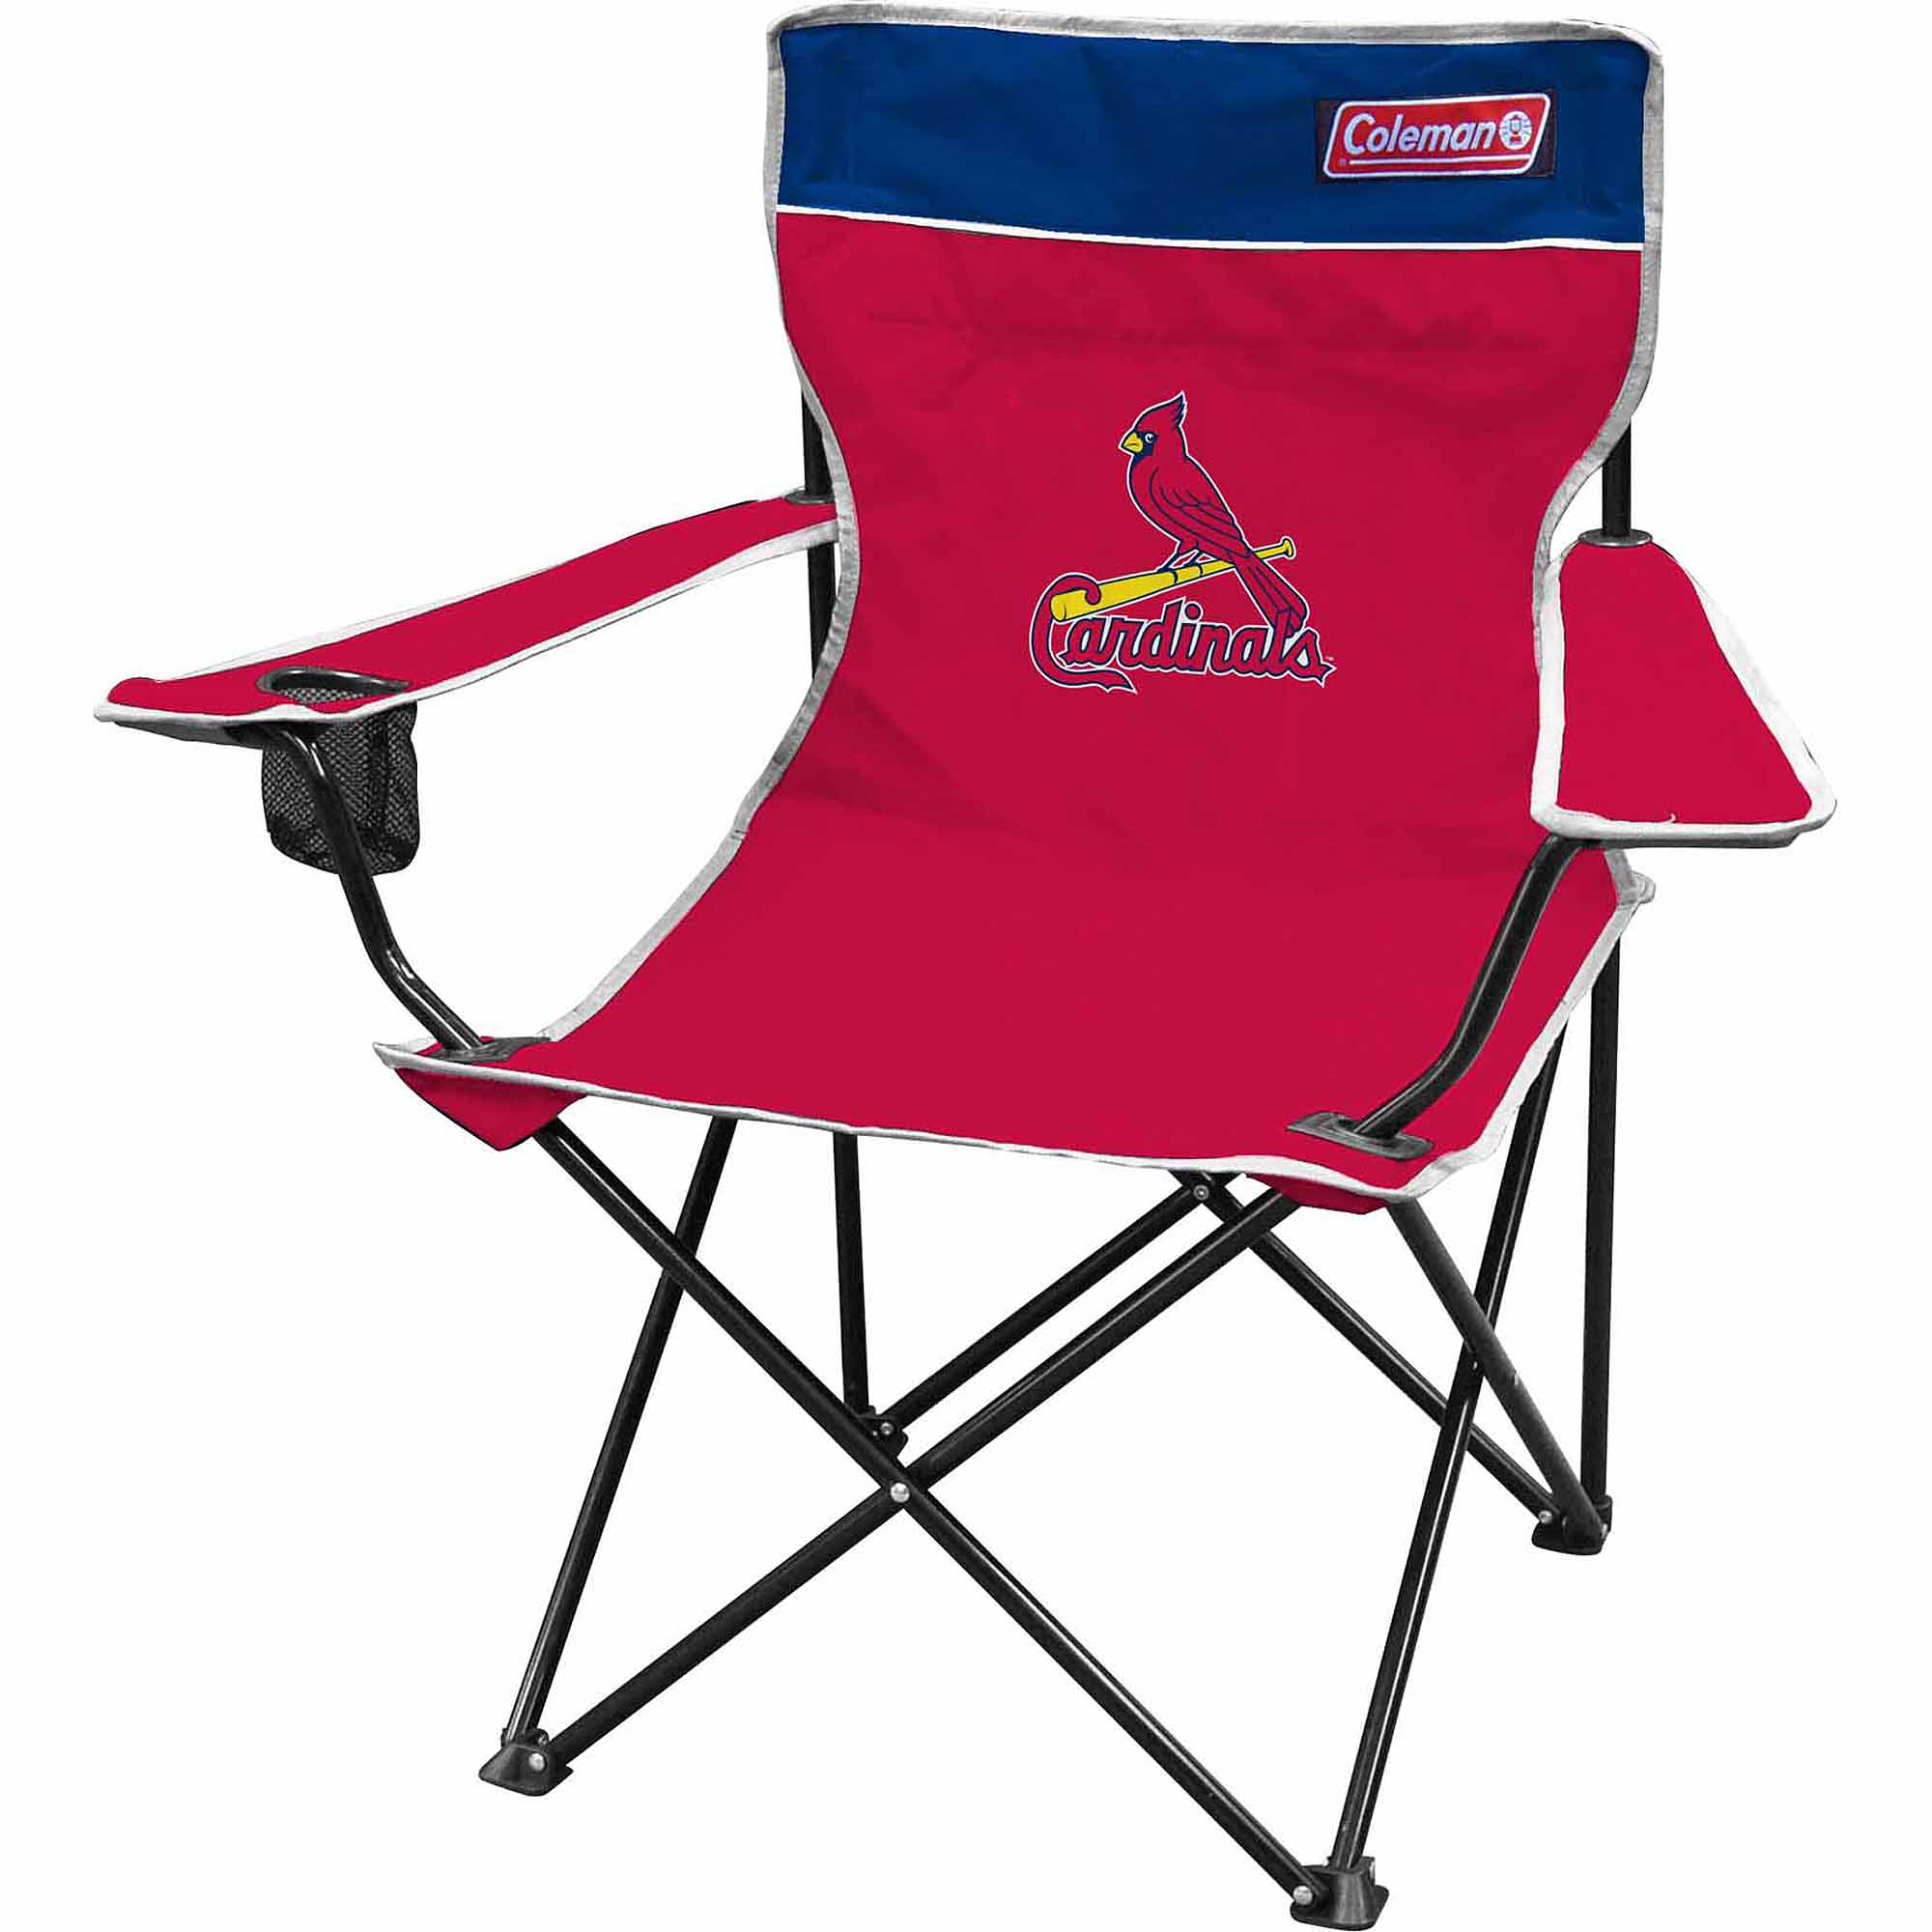 Coleman MLB St. Louis Cardinals Quad Chair